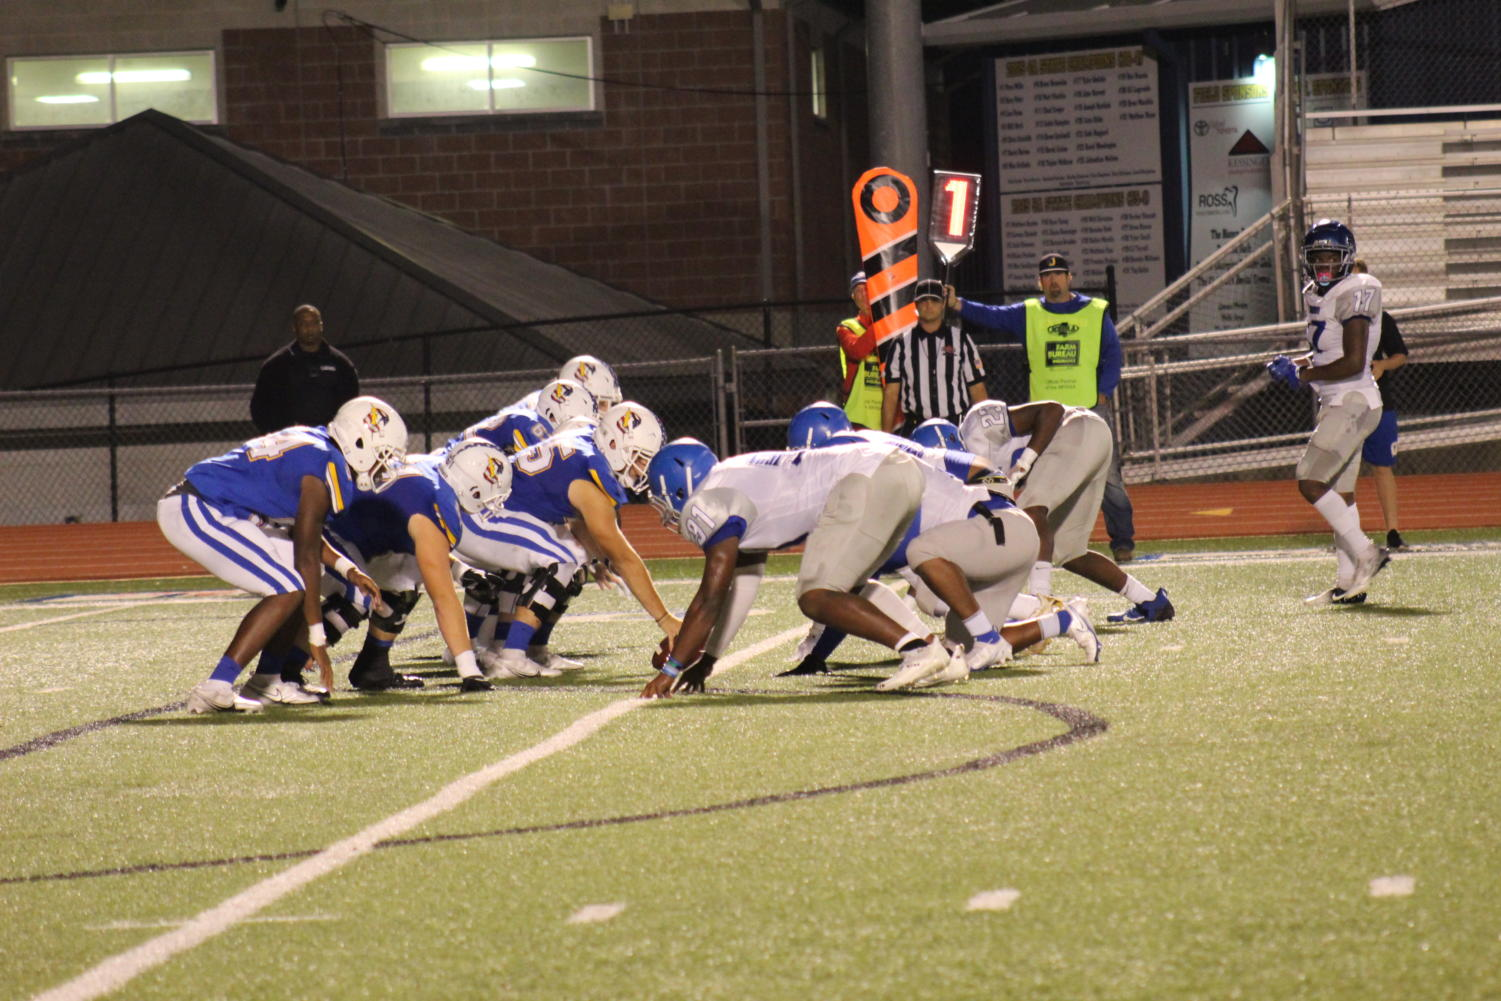 The Chargers prepare for a play against the Murrah Mustangs during the homecoming game. Oxford won the game 38-0.